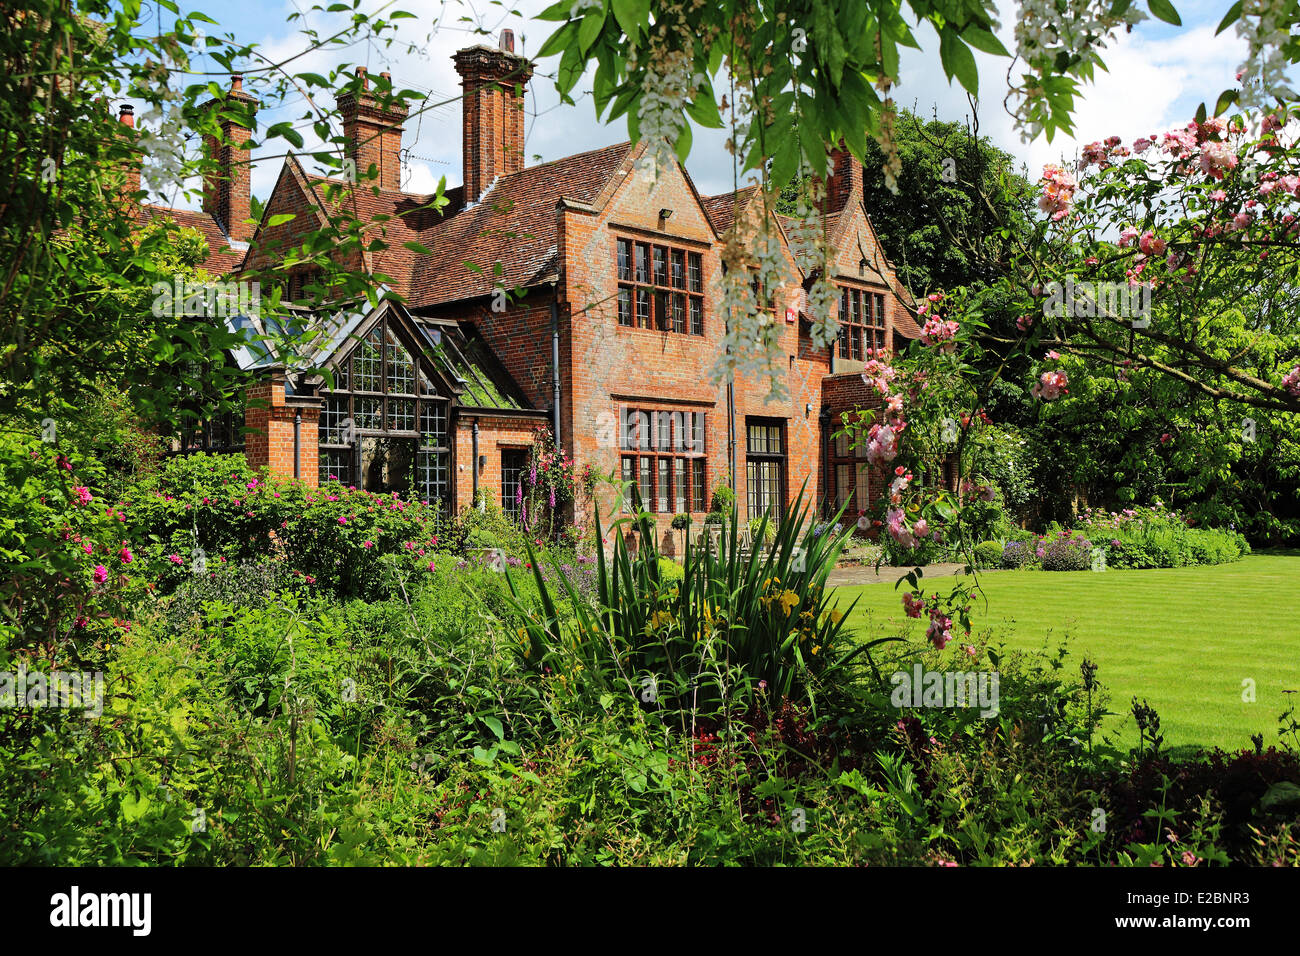 english rural manor house and garden stock photo  royalty manor house gardens wd5 0dh manor house gardens wd5 0dh